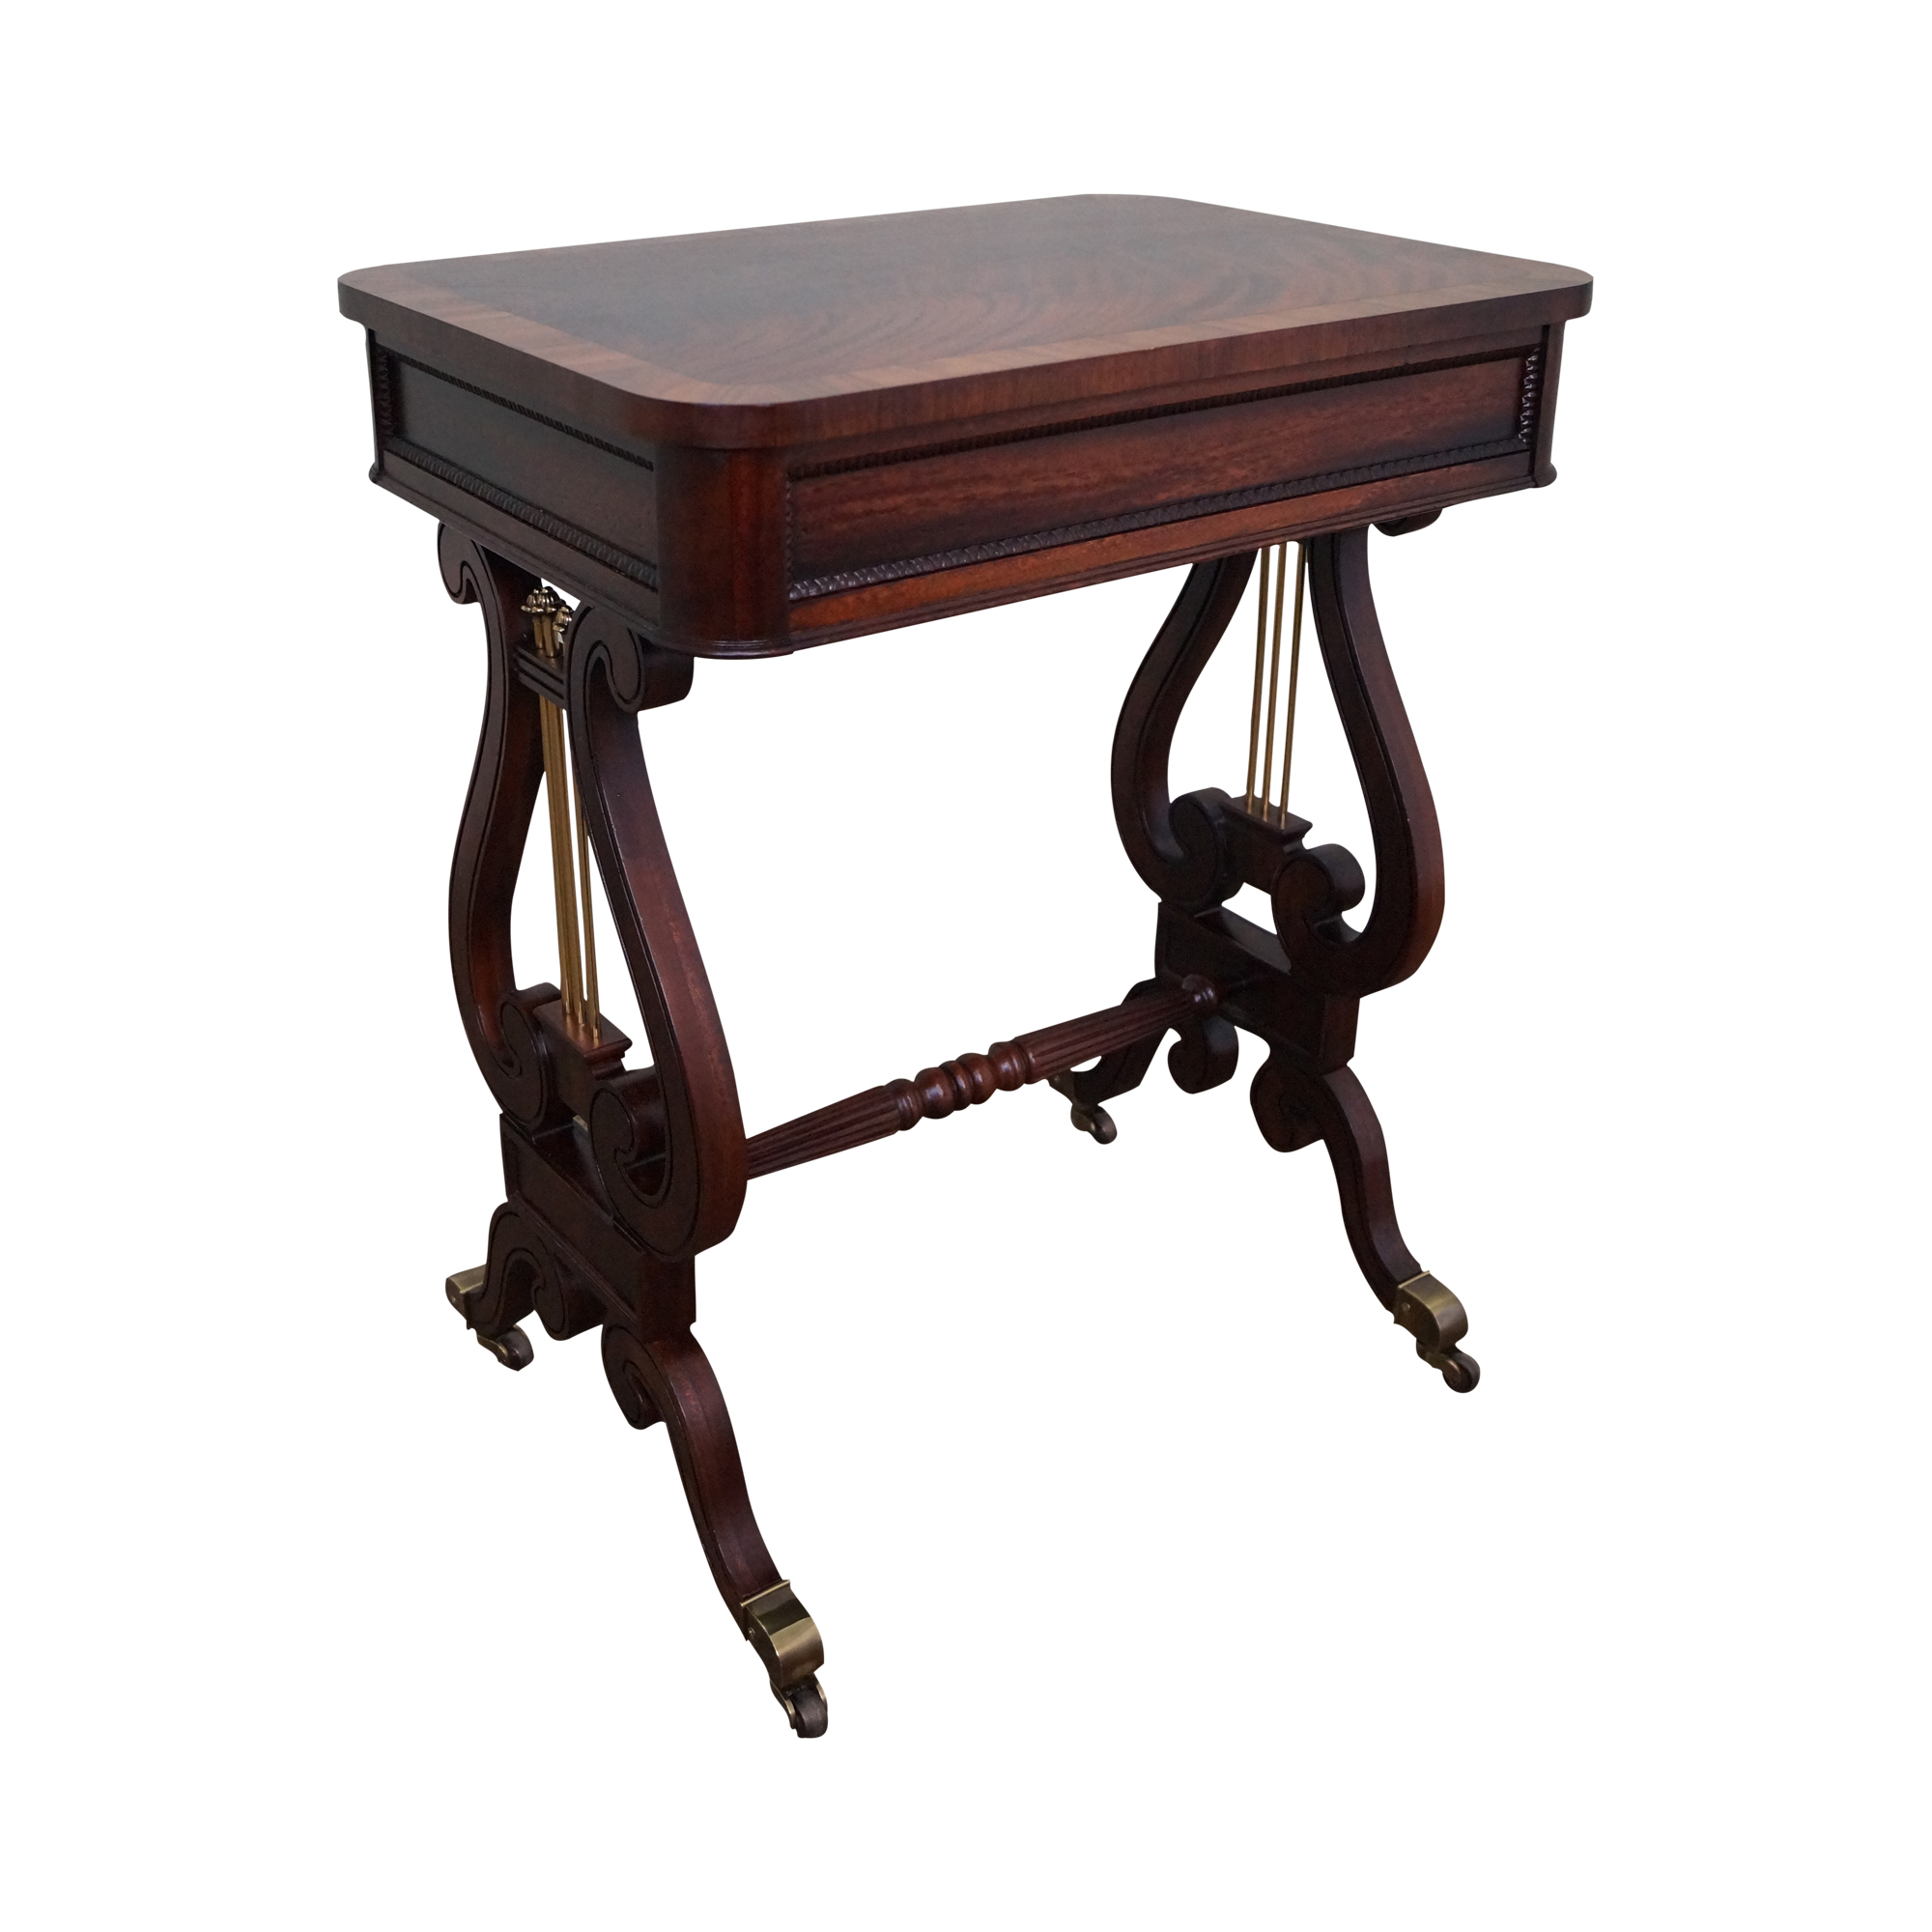 Flame Mahogany Hepplewhite Lyre Base Side Table Chairish : flame mahogany hepplewhite lyre base side table 5704 from www.chairish.com size 2000 x 2000 png 1148kB